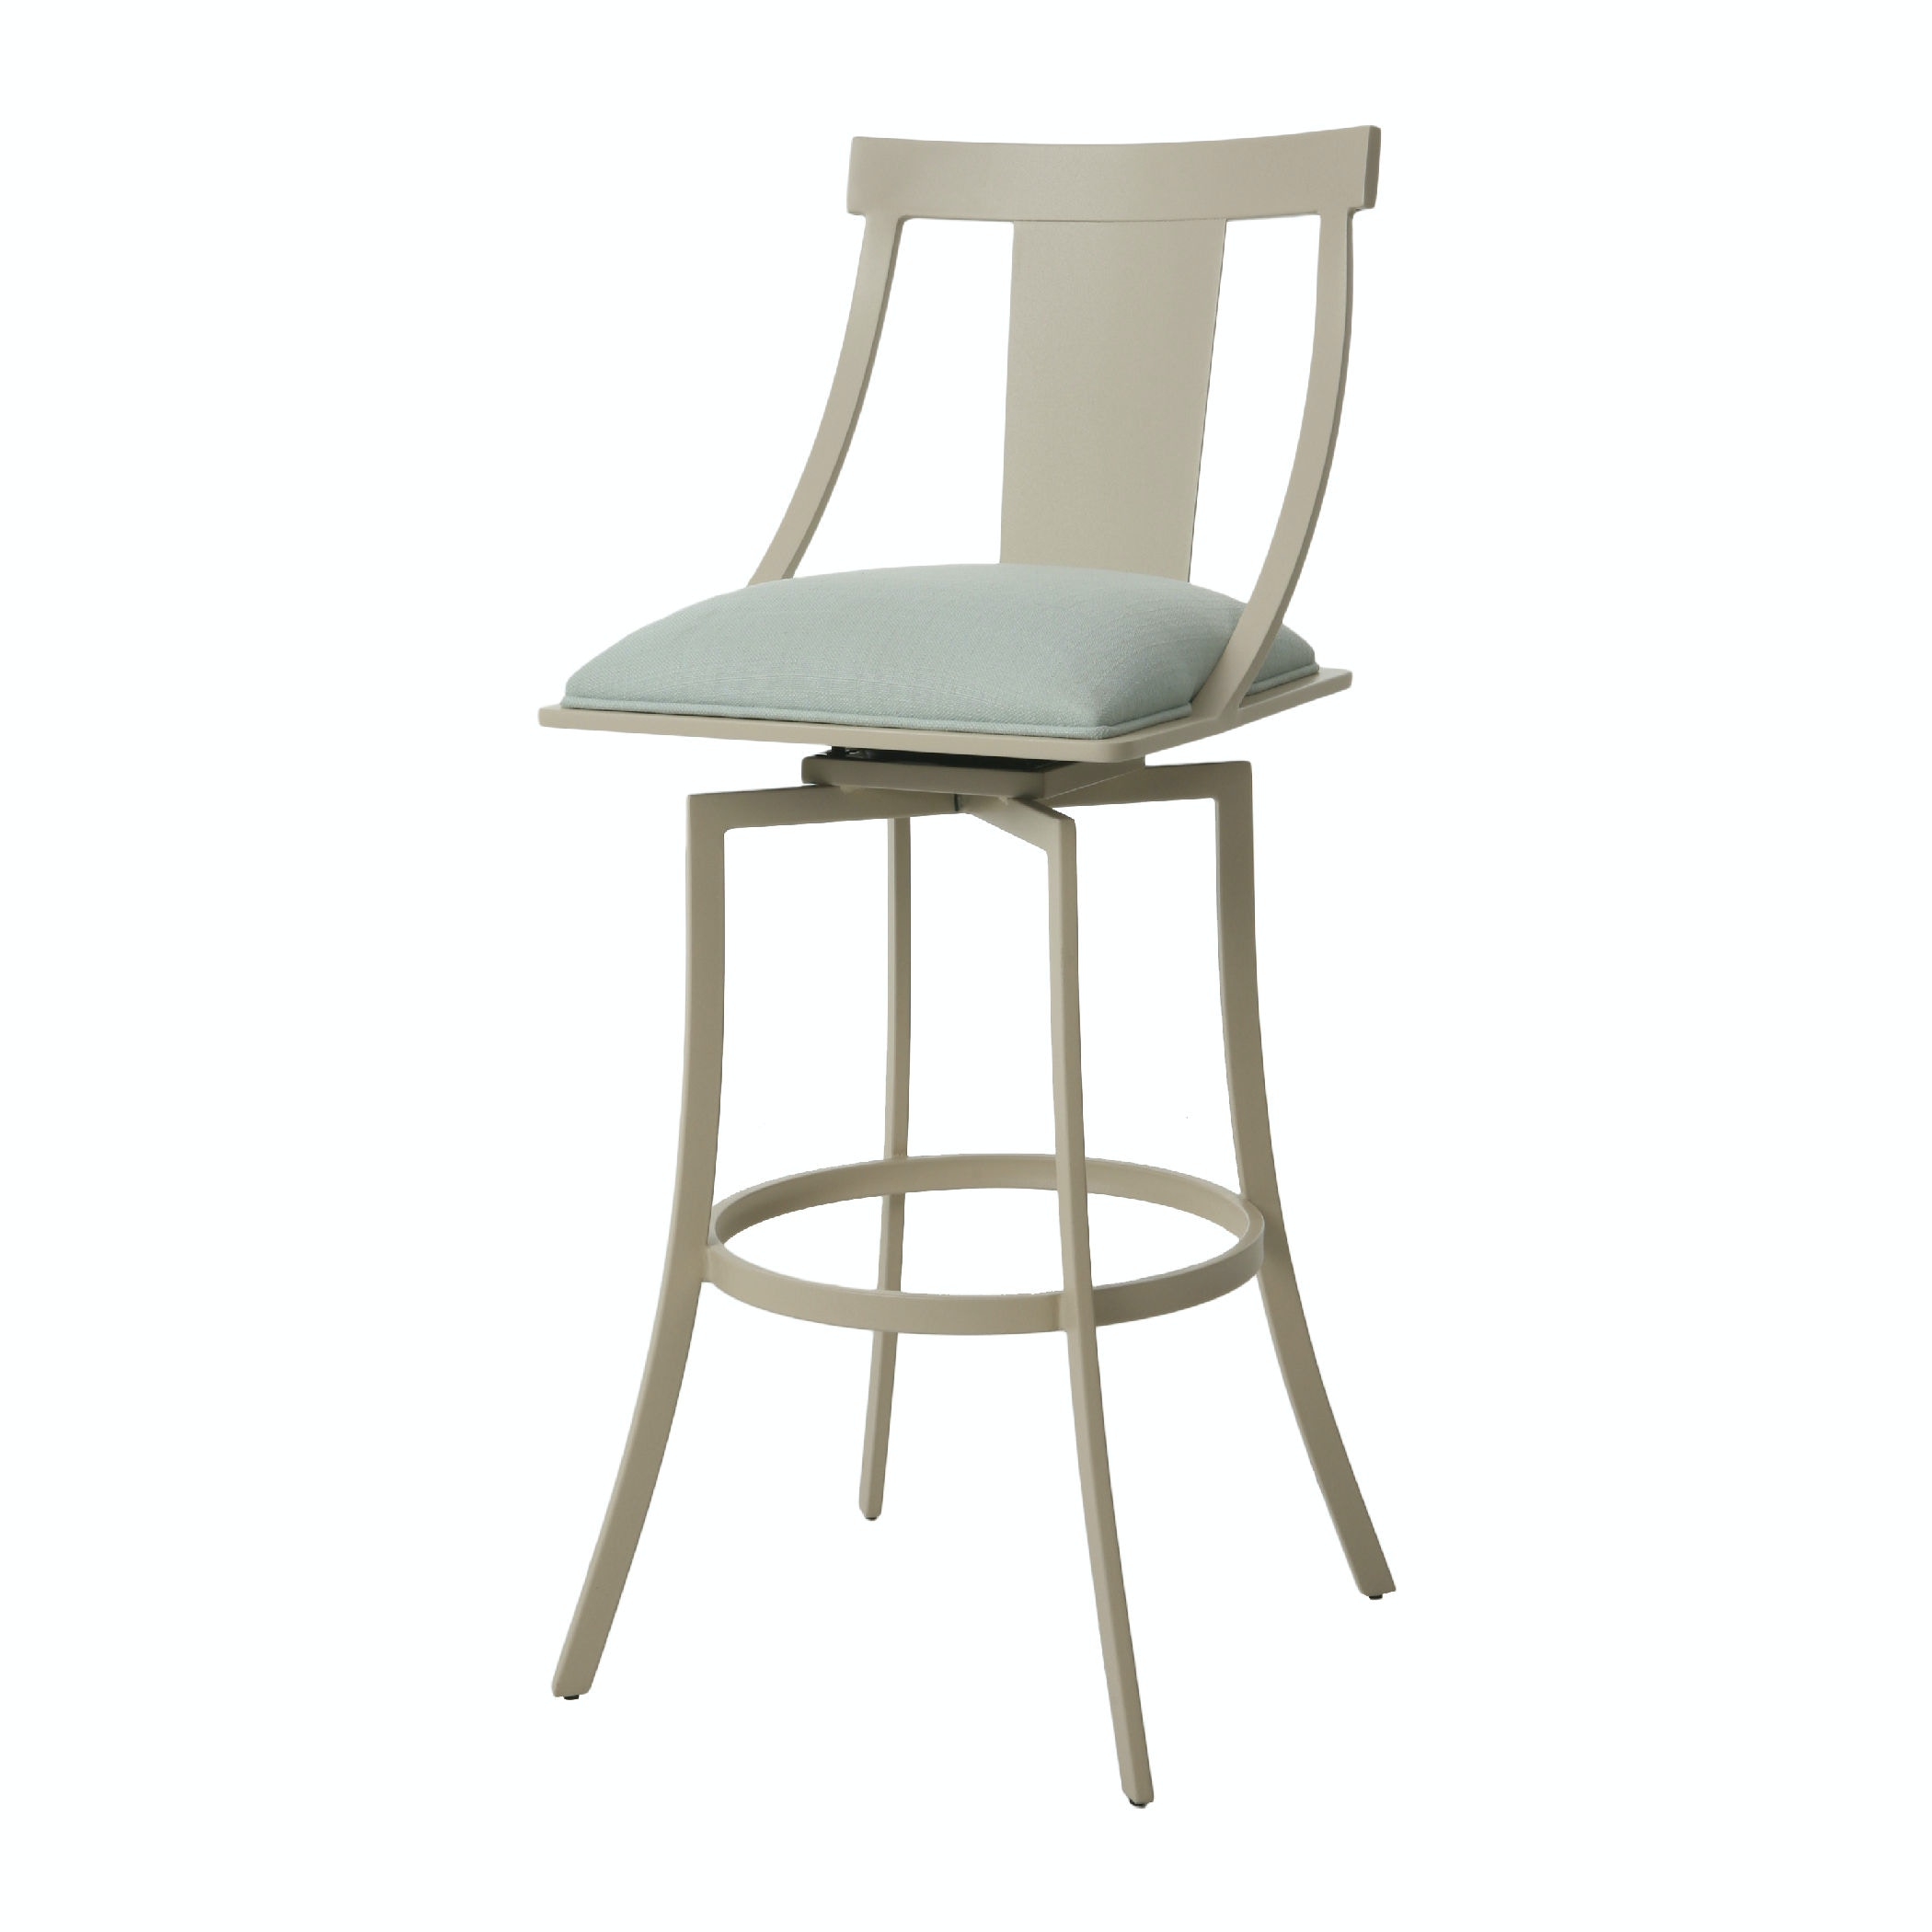 Pastel Furniture Hayden Swivel Barstool HY 219 26